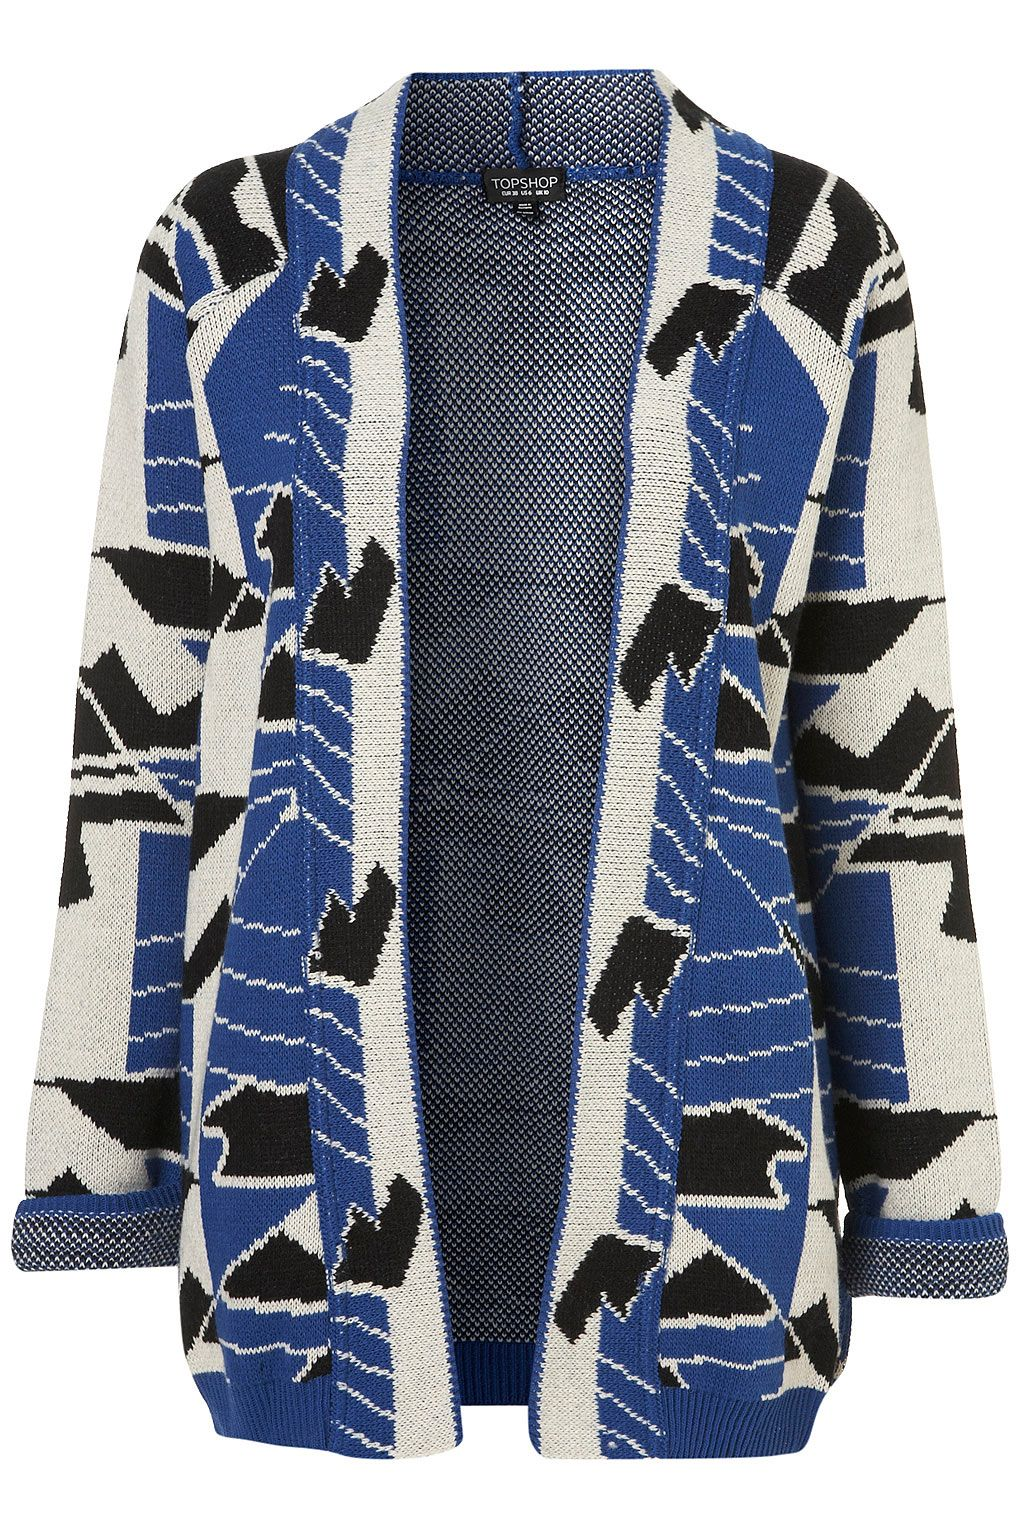 Knitted Geo-Festival Cardigan, $92.00 at Topshop.